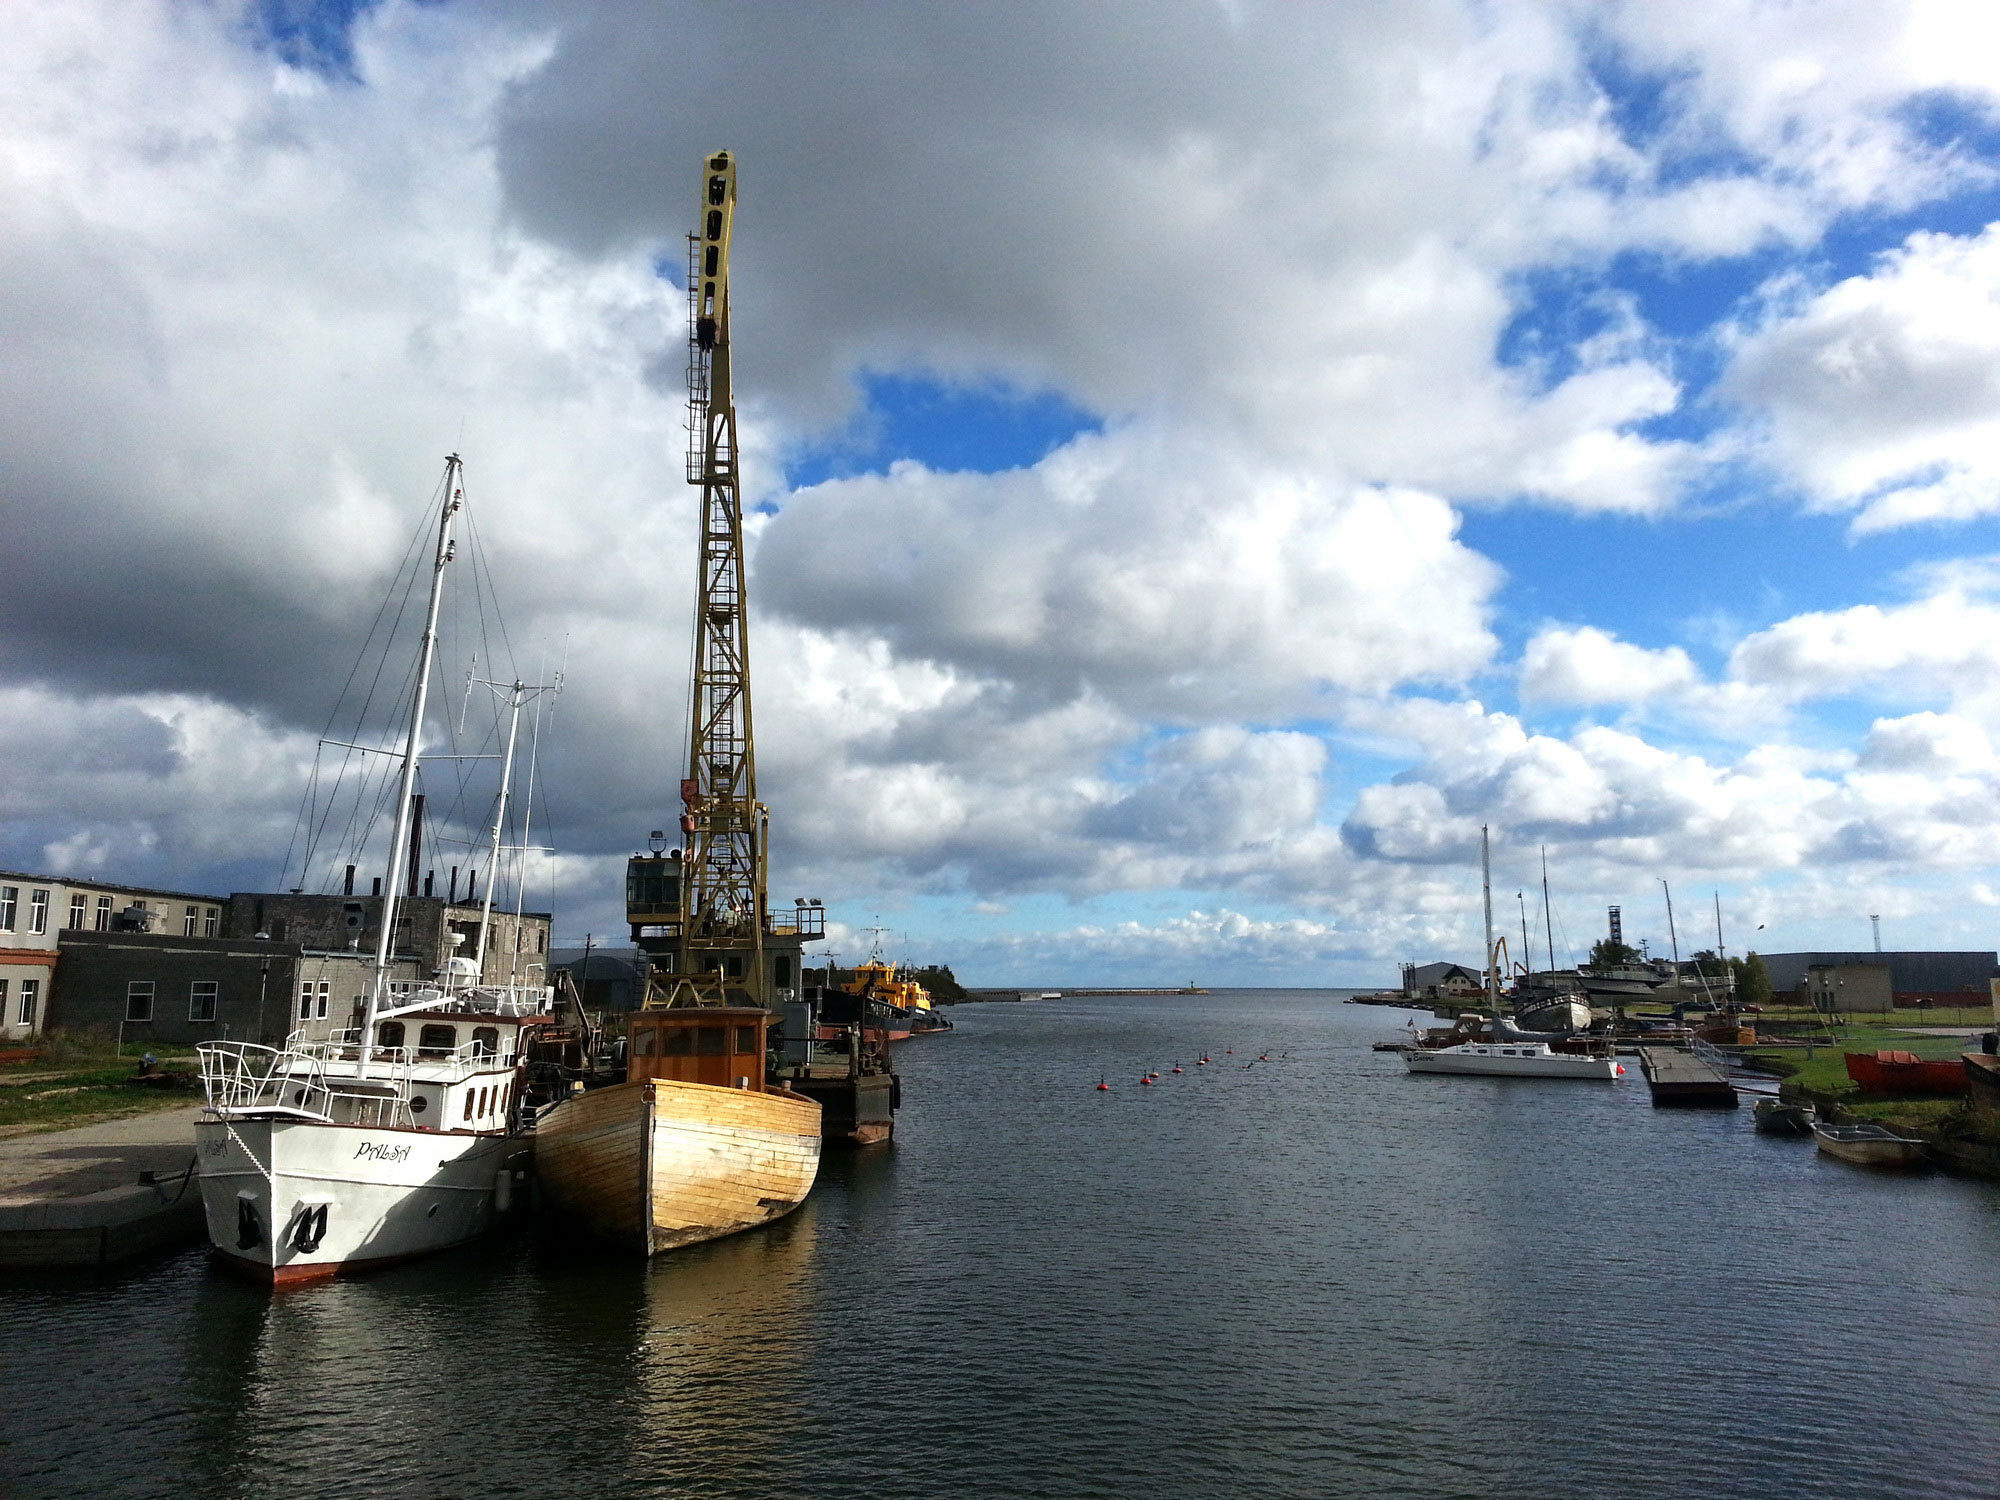 Mersrags harbour